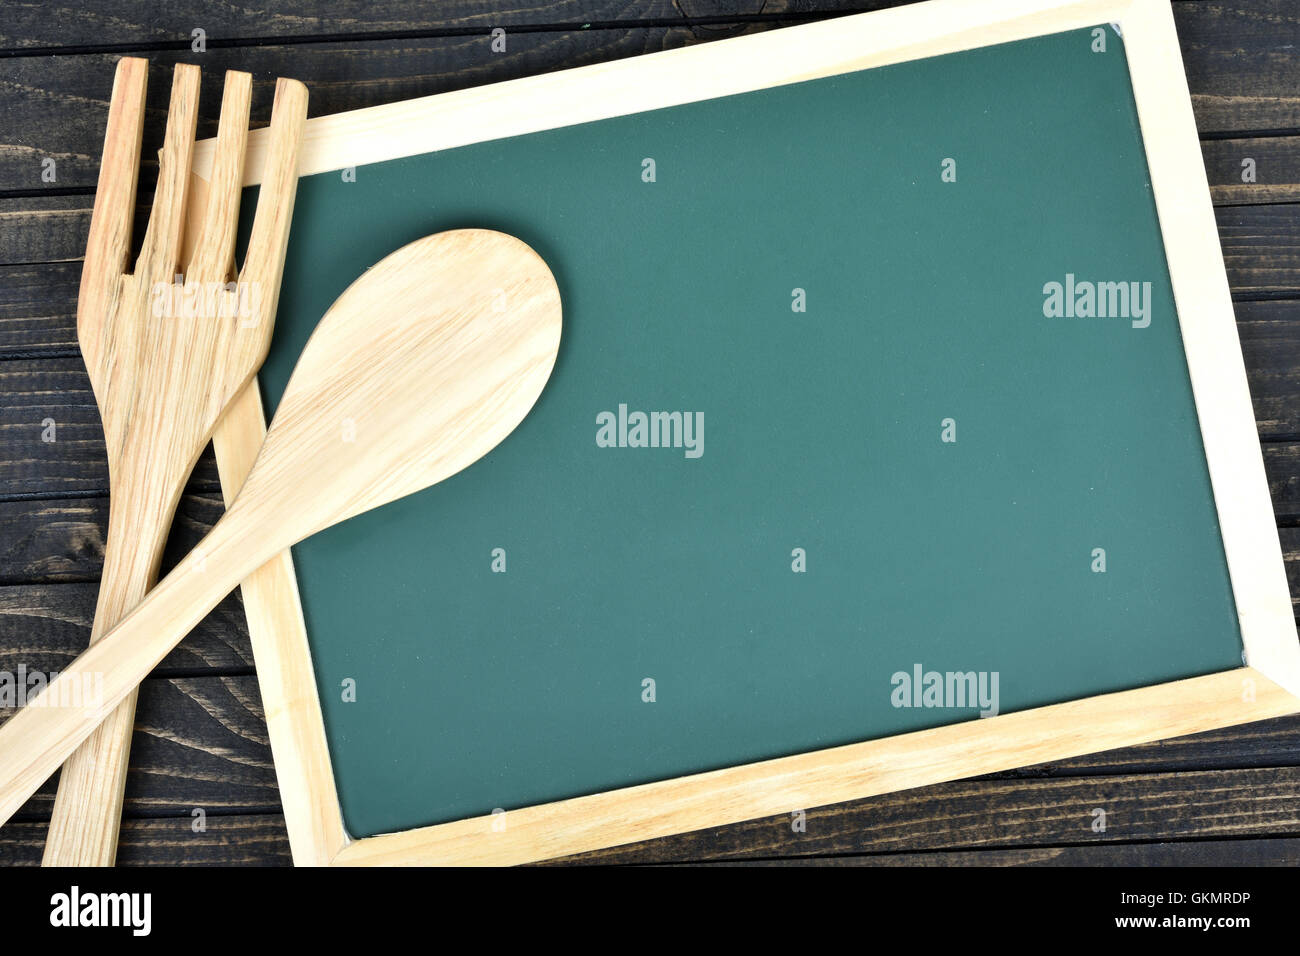 Cooking Lesson Text Stock Photos & Cooking Lesson Text Stock Images ...